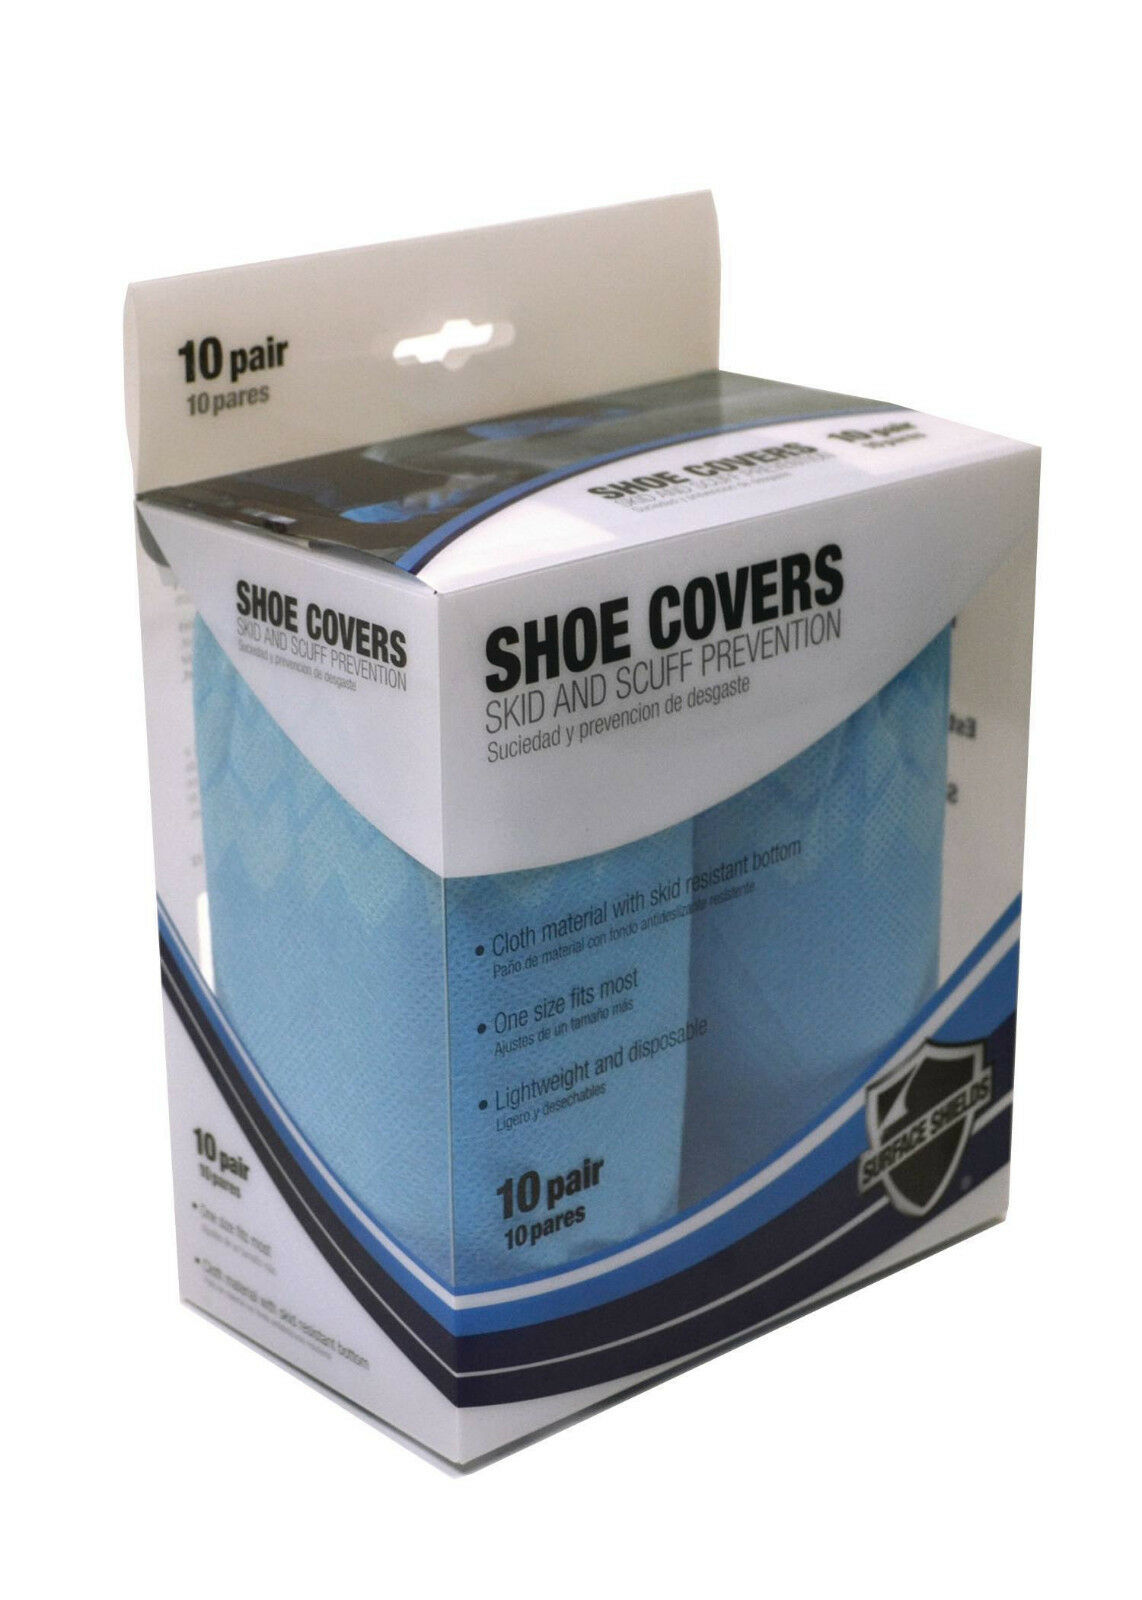 SHOECOVER - Surface Shields Show Covers